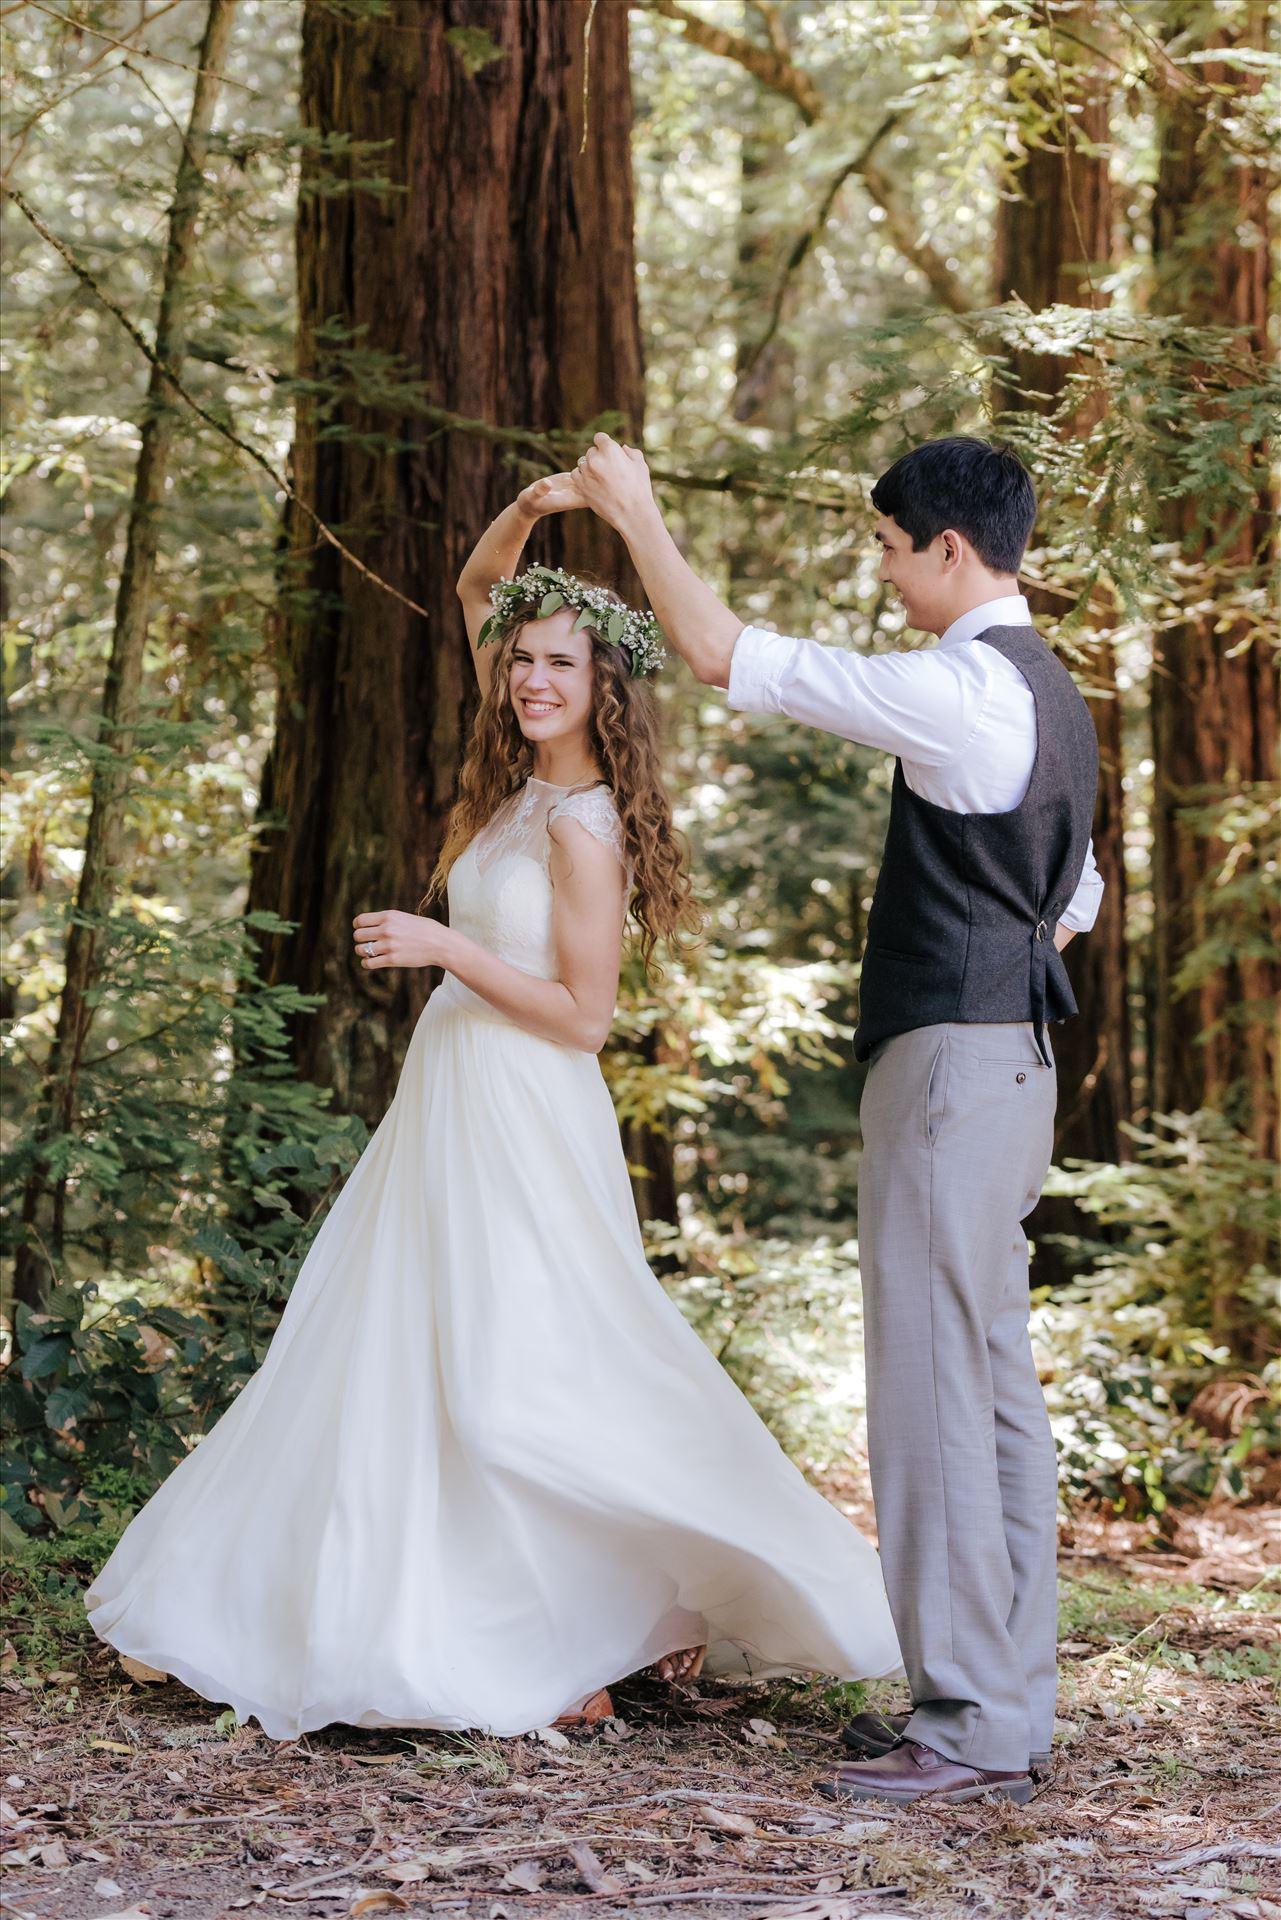 FW-6667.JPG - Mt Madonna wedding in the redwoods outside of Watsonville, California with a romantic and classic vibe by sarah williams of mirror's edge photography a san luis obispo wedding photographer.  Bride and Groom dancing in the forest by Sarah Williams